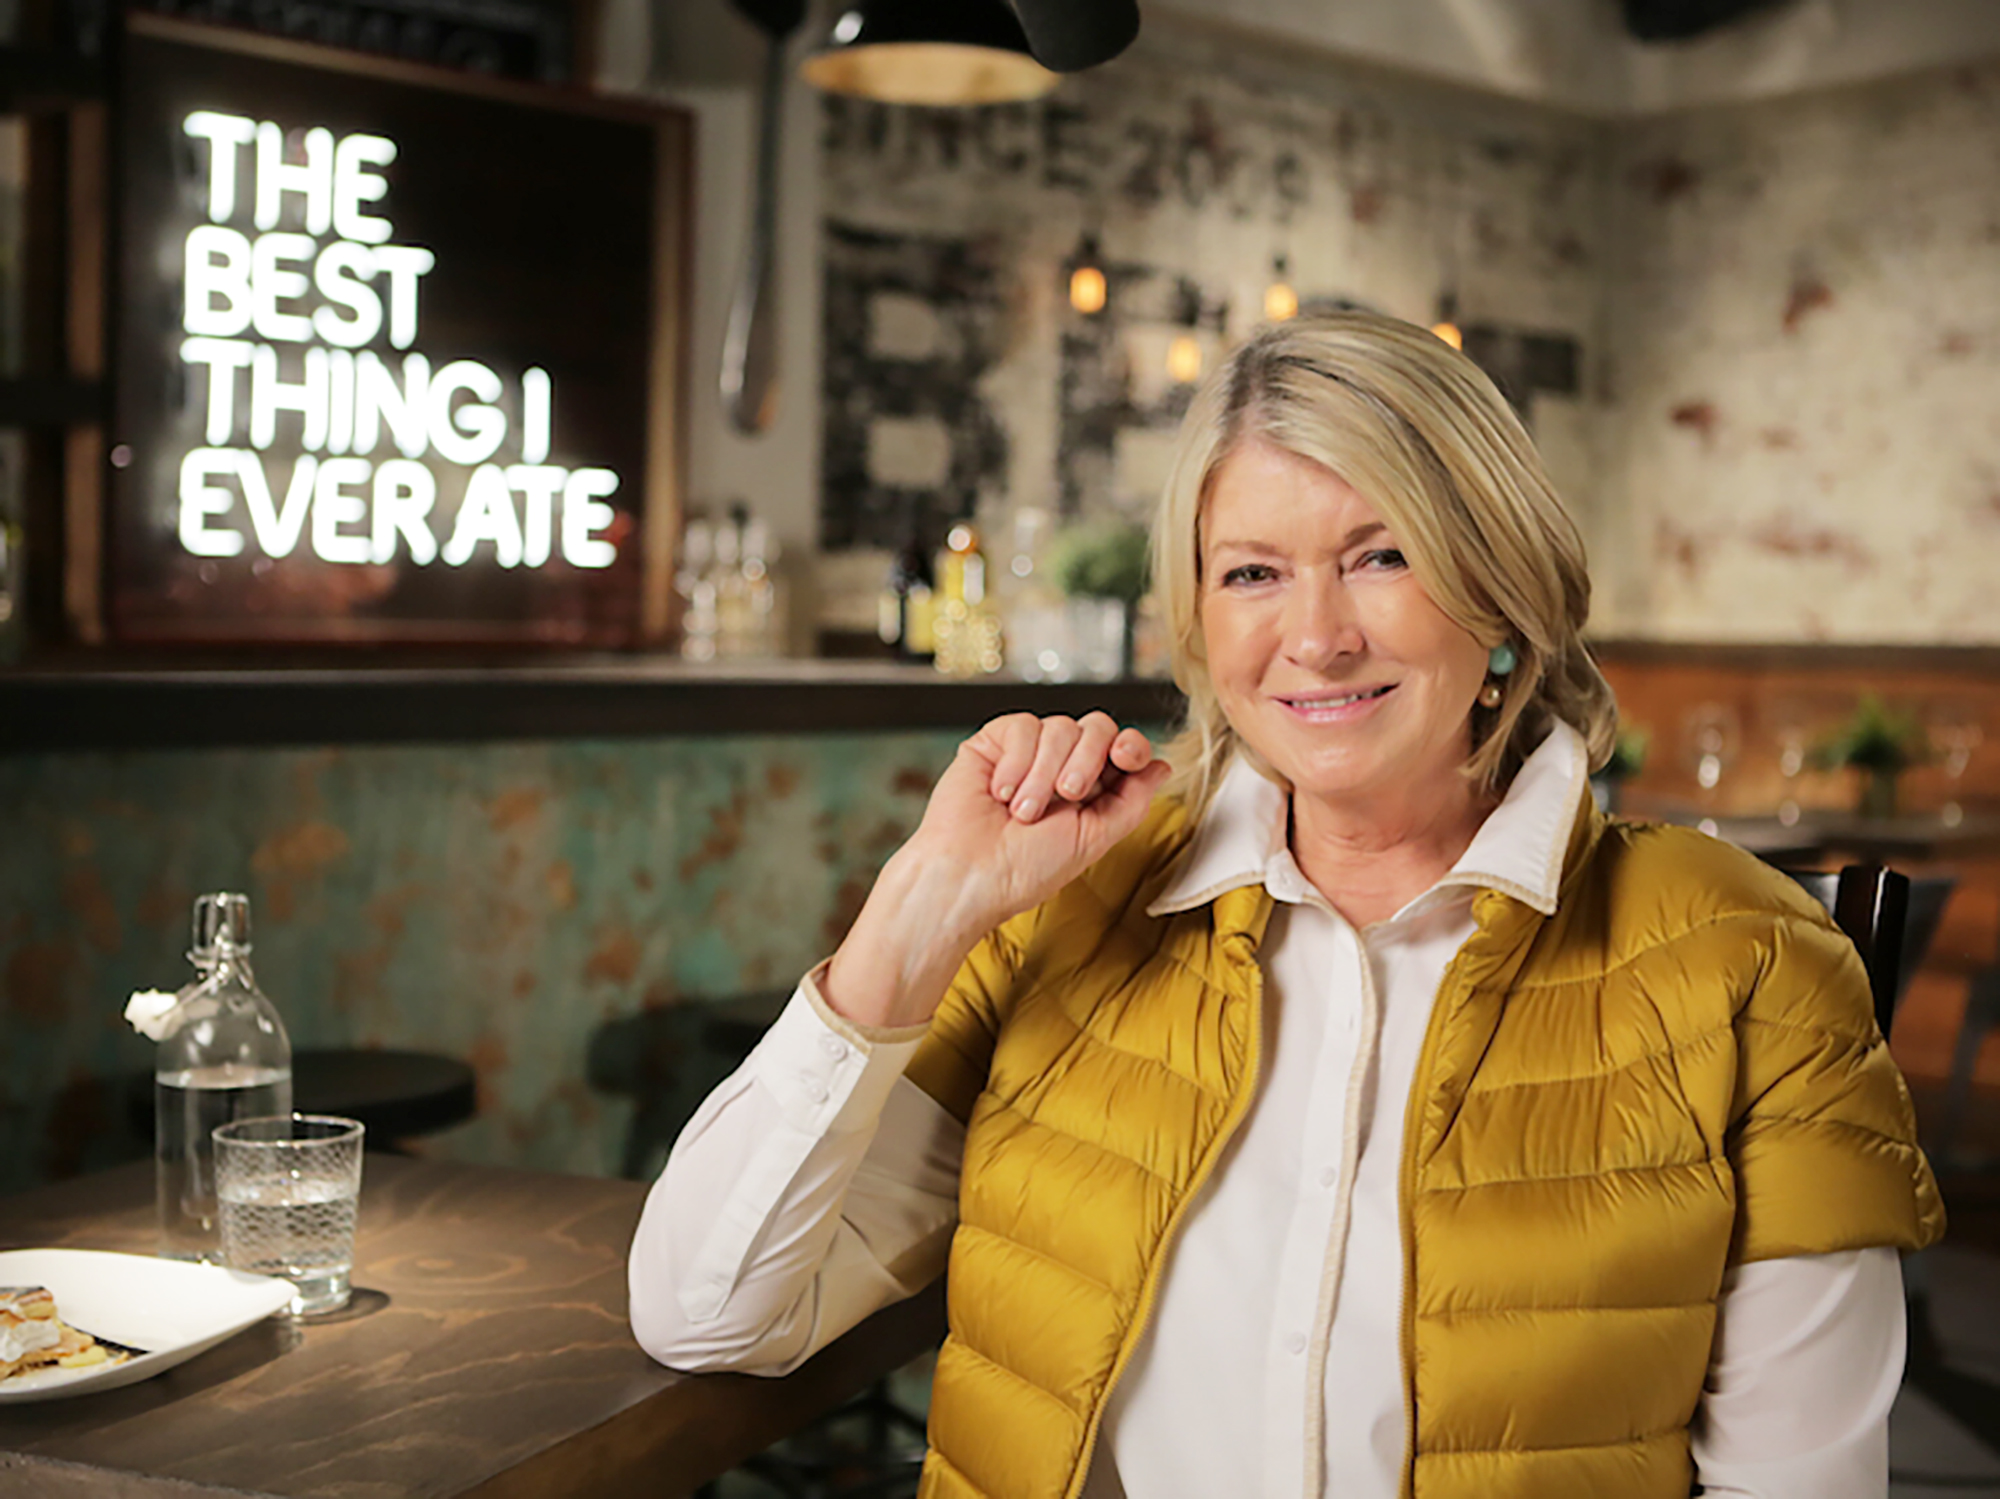 Martha Stewart appears on the Cooking Channel